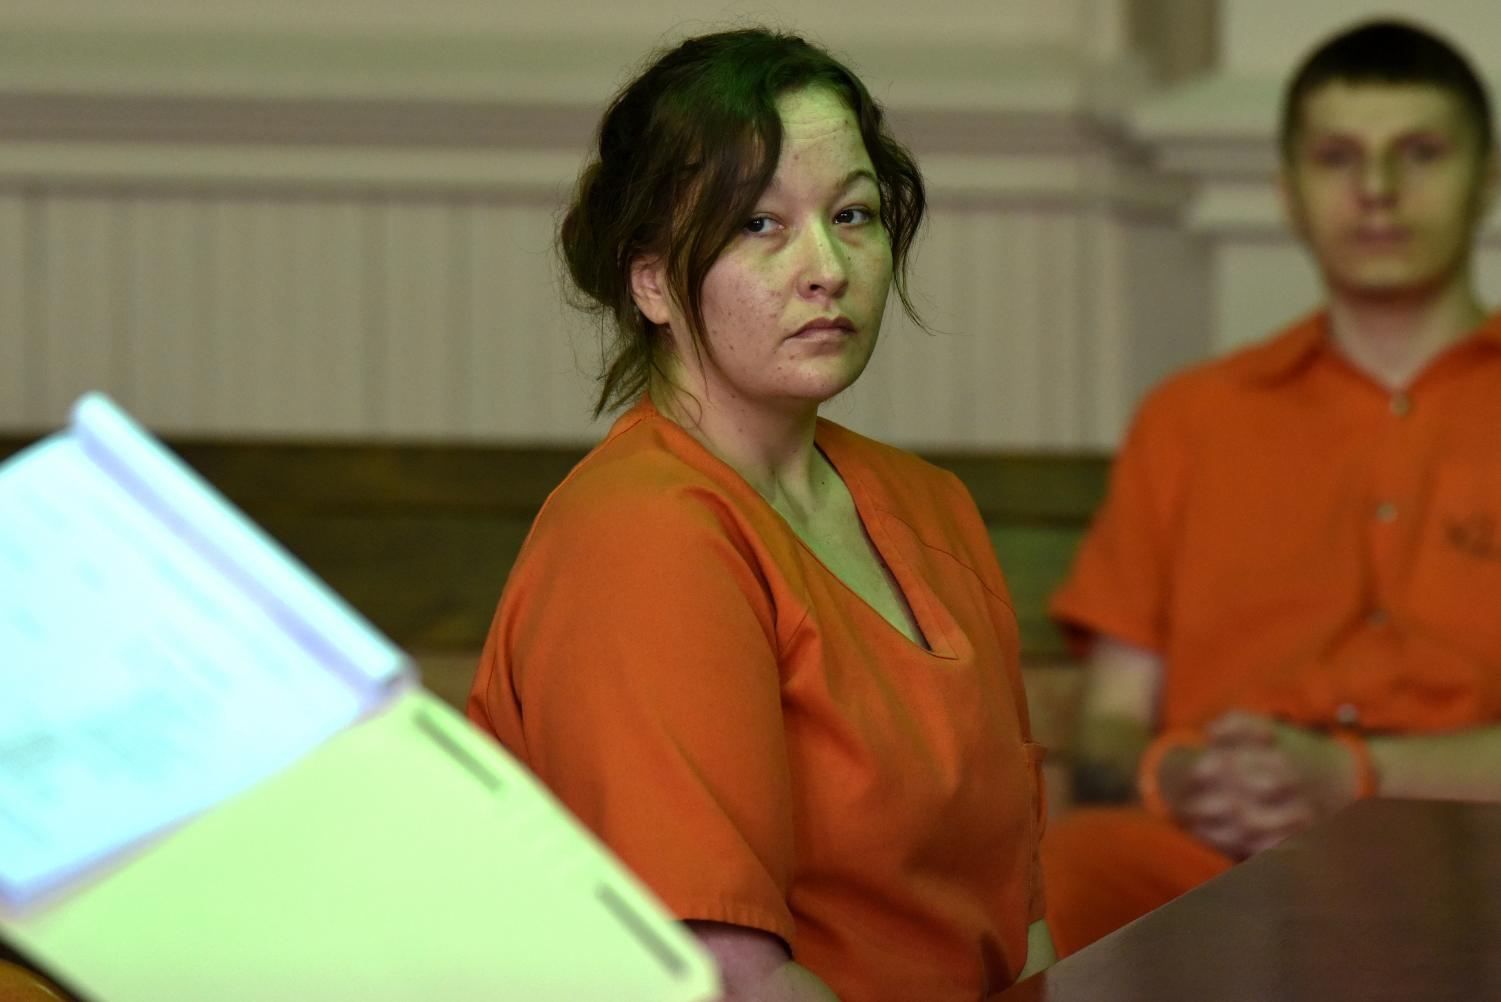 Jessica Eblin watches her defense attorney as he approaches the state's side of the courtroom to utter a clarification during her plea hearing.